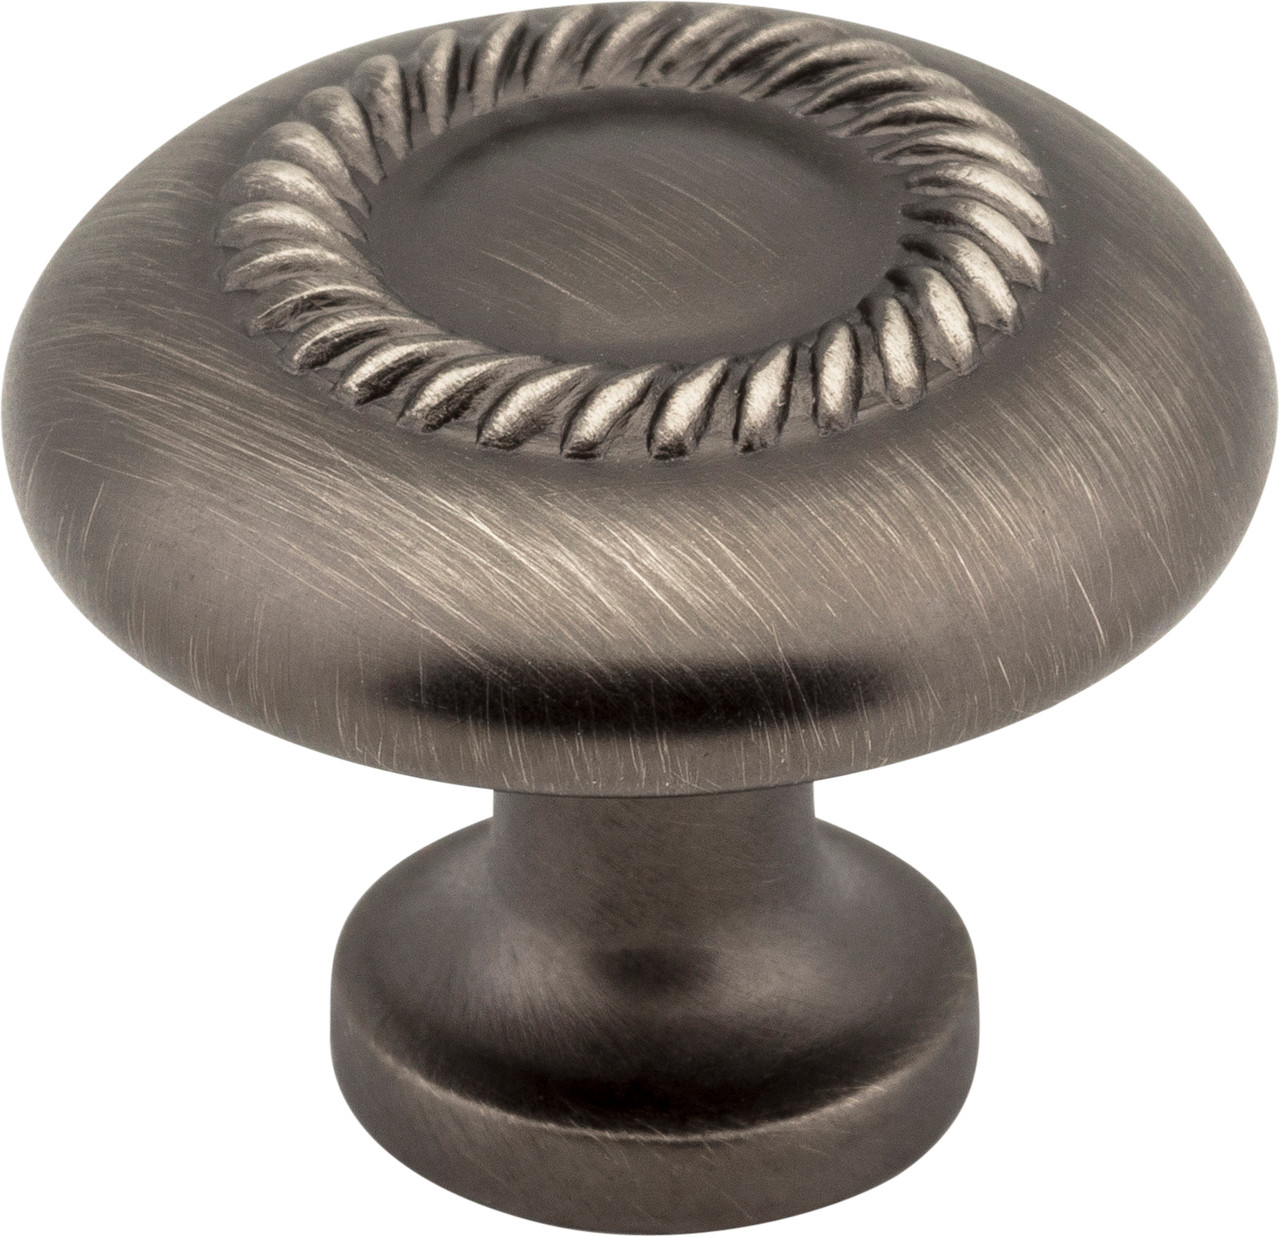 1 1 4 Diameter Cabinet Knob With Rope Detail From The